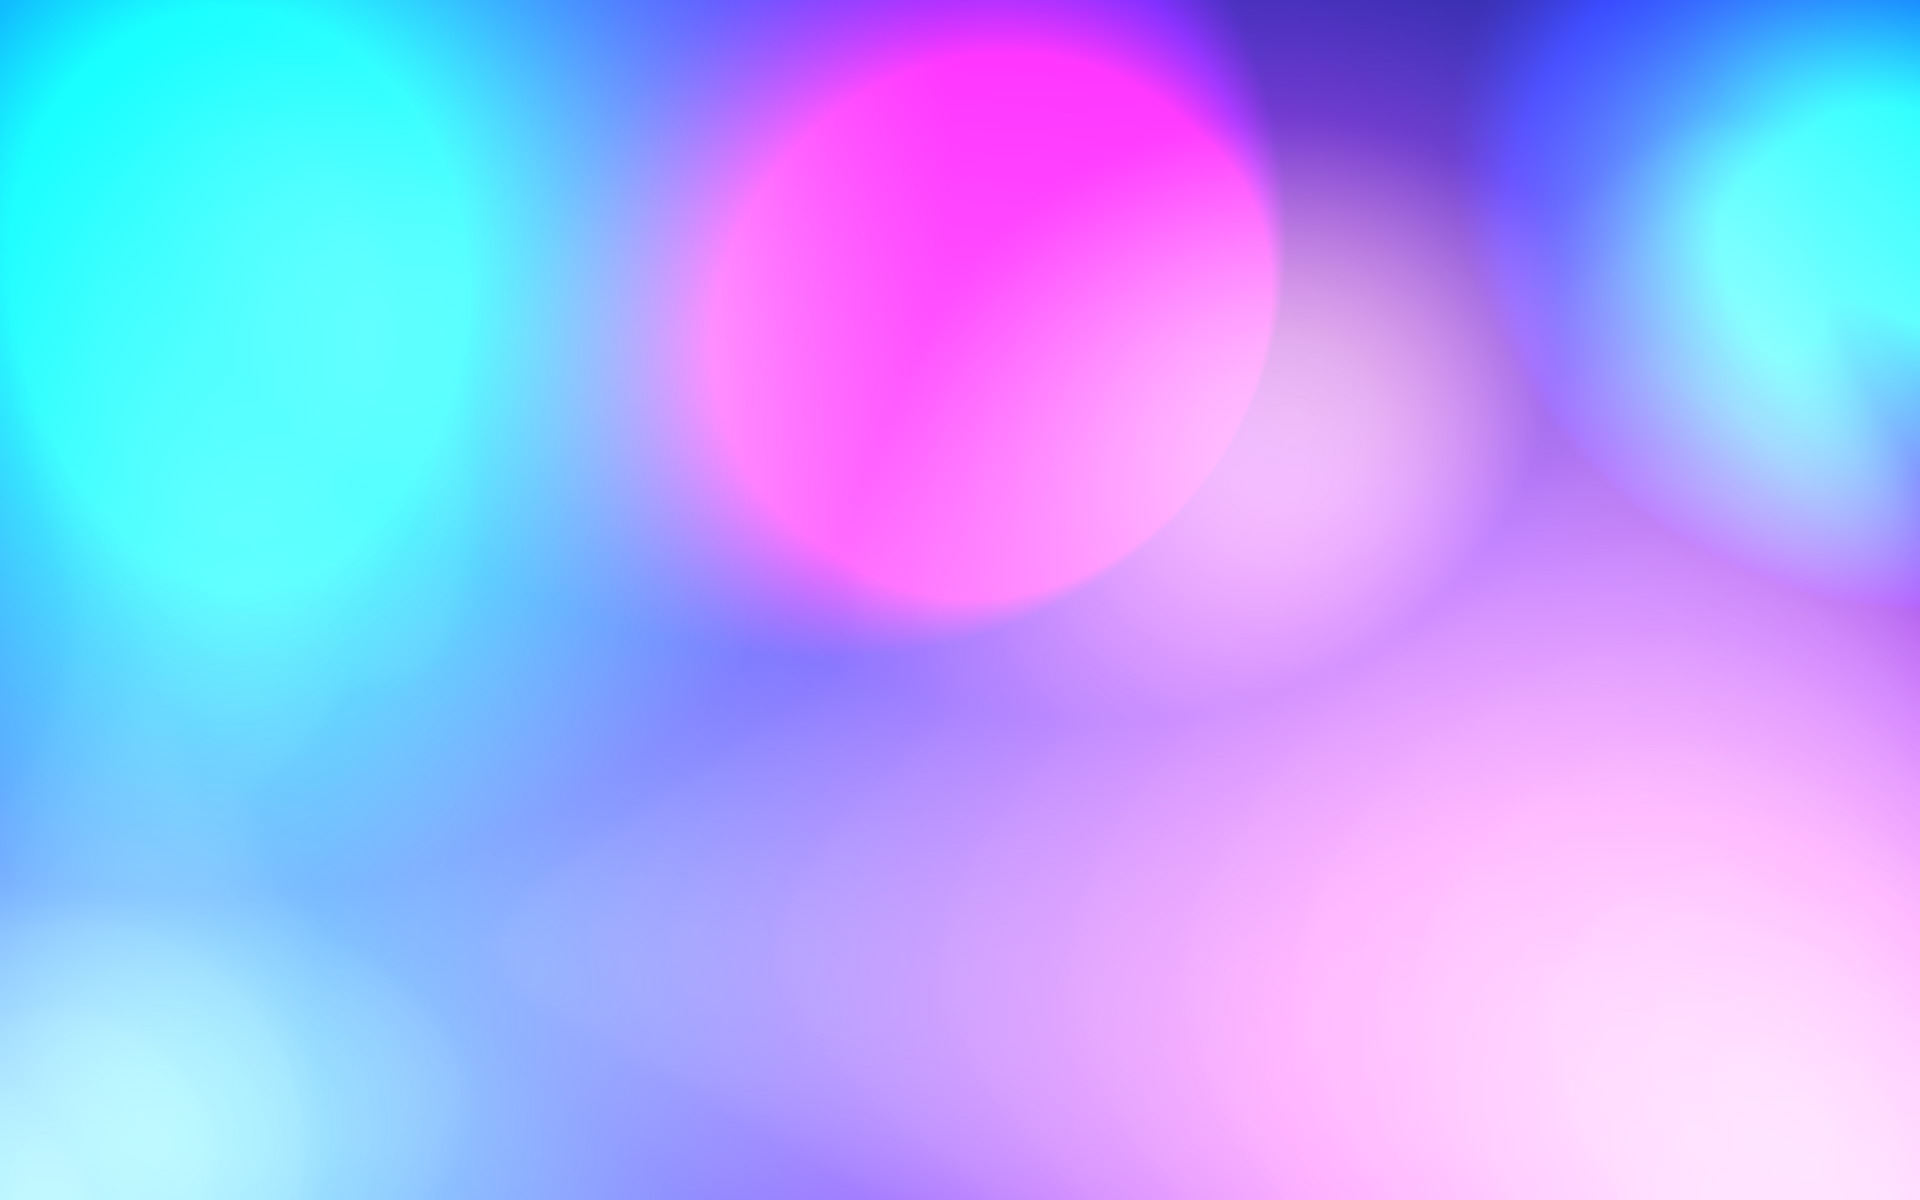 gaussian_blur_wallpaper-7903